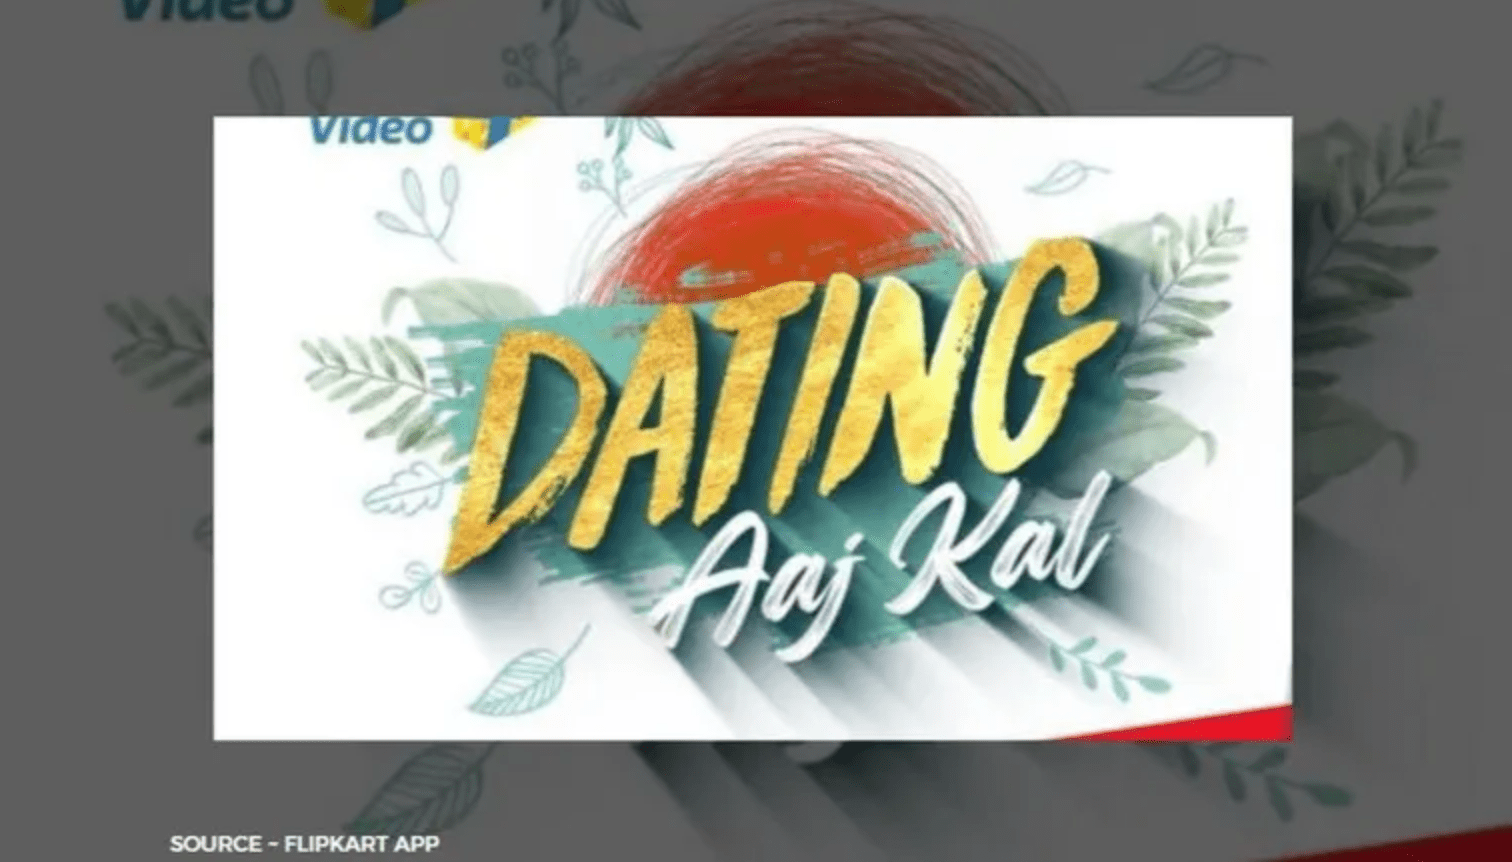 Flipkart Dating Aaj kal